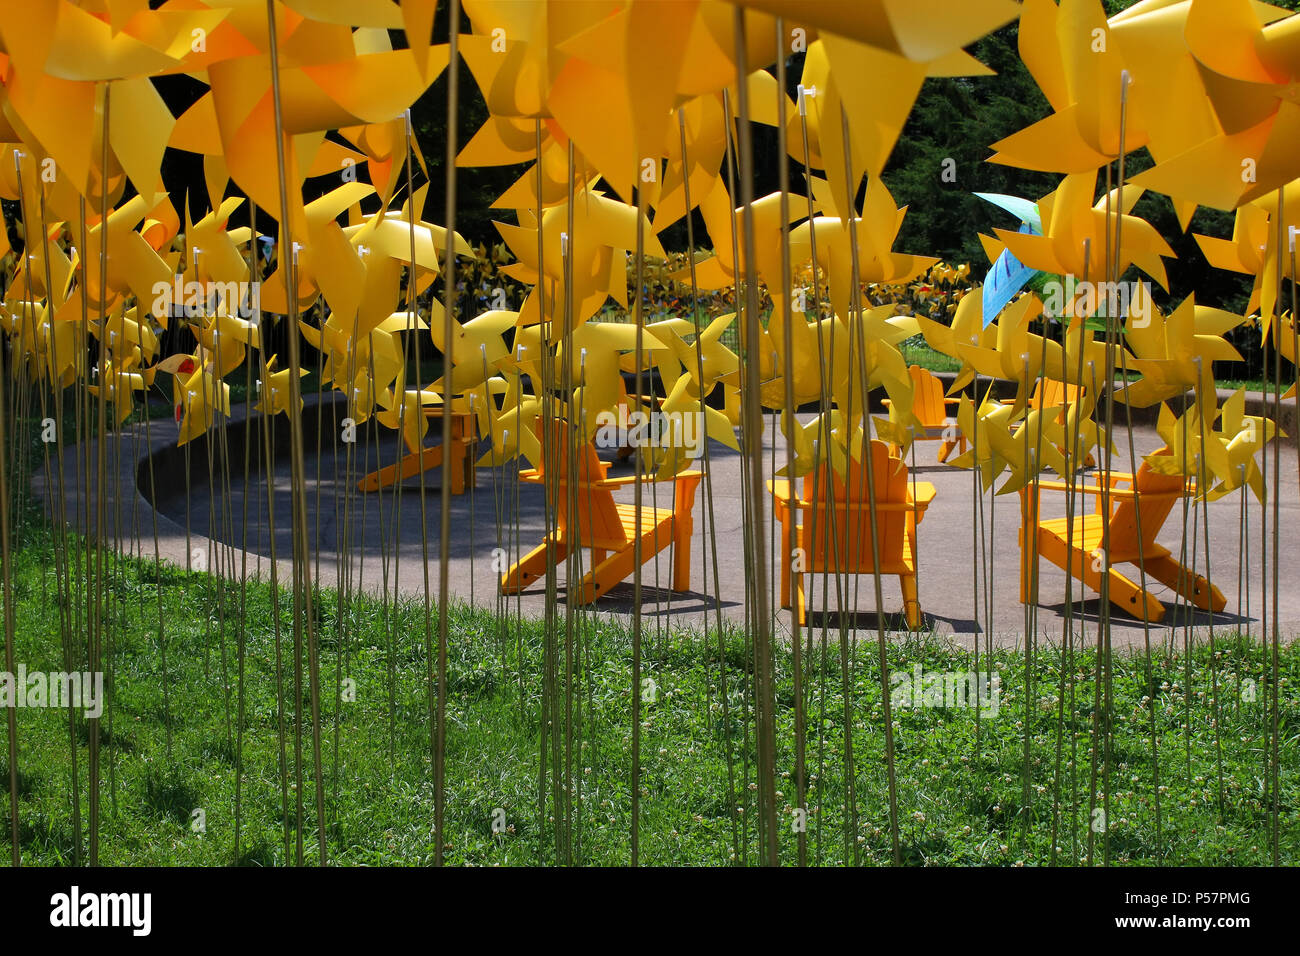 NEW YORK, NY - JULY 10: Yellow pinwheels placed in Prospect Park\'s ...